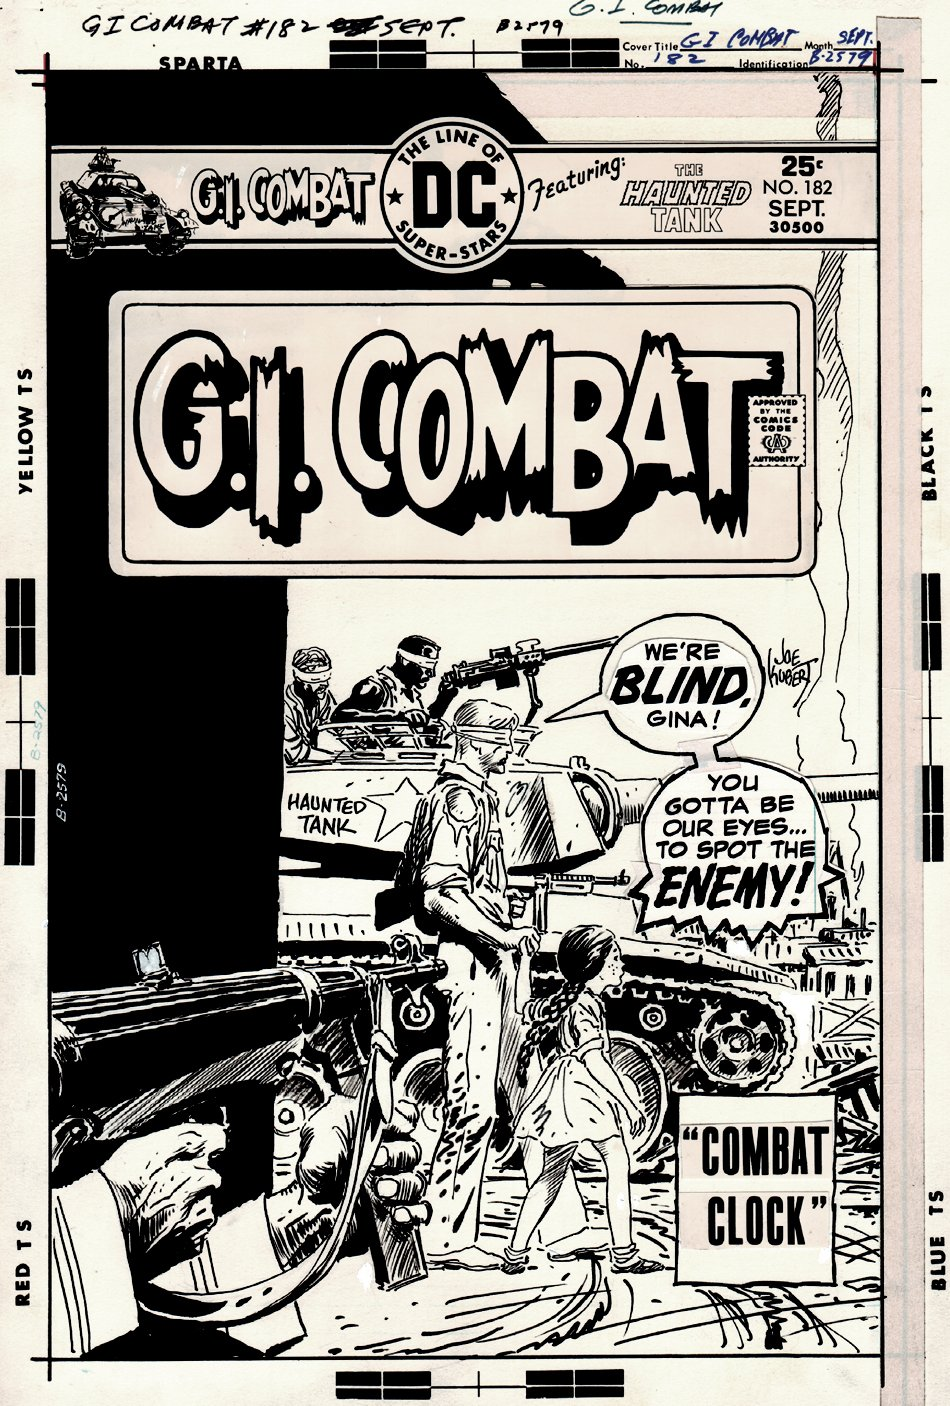 G.I. Combat #182 Cover (THE HAUNTED TANK!) 1975